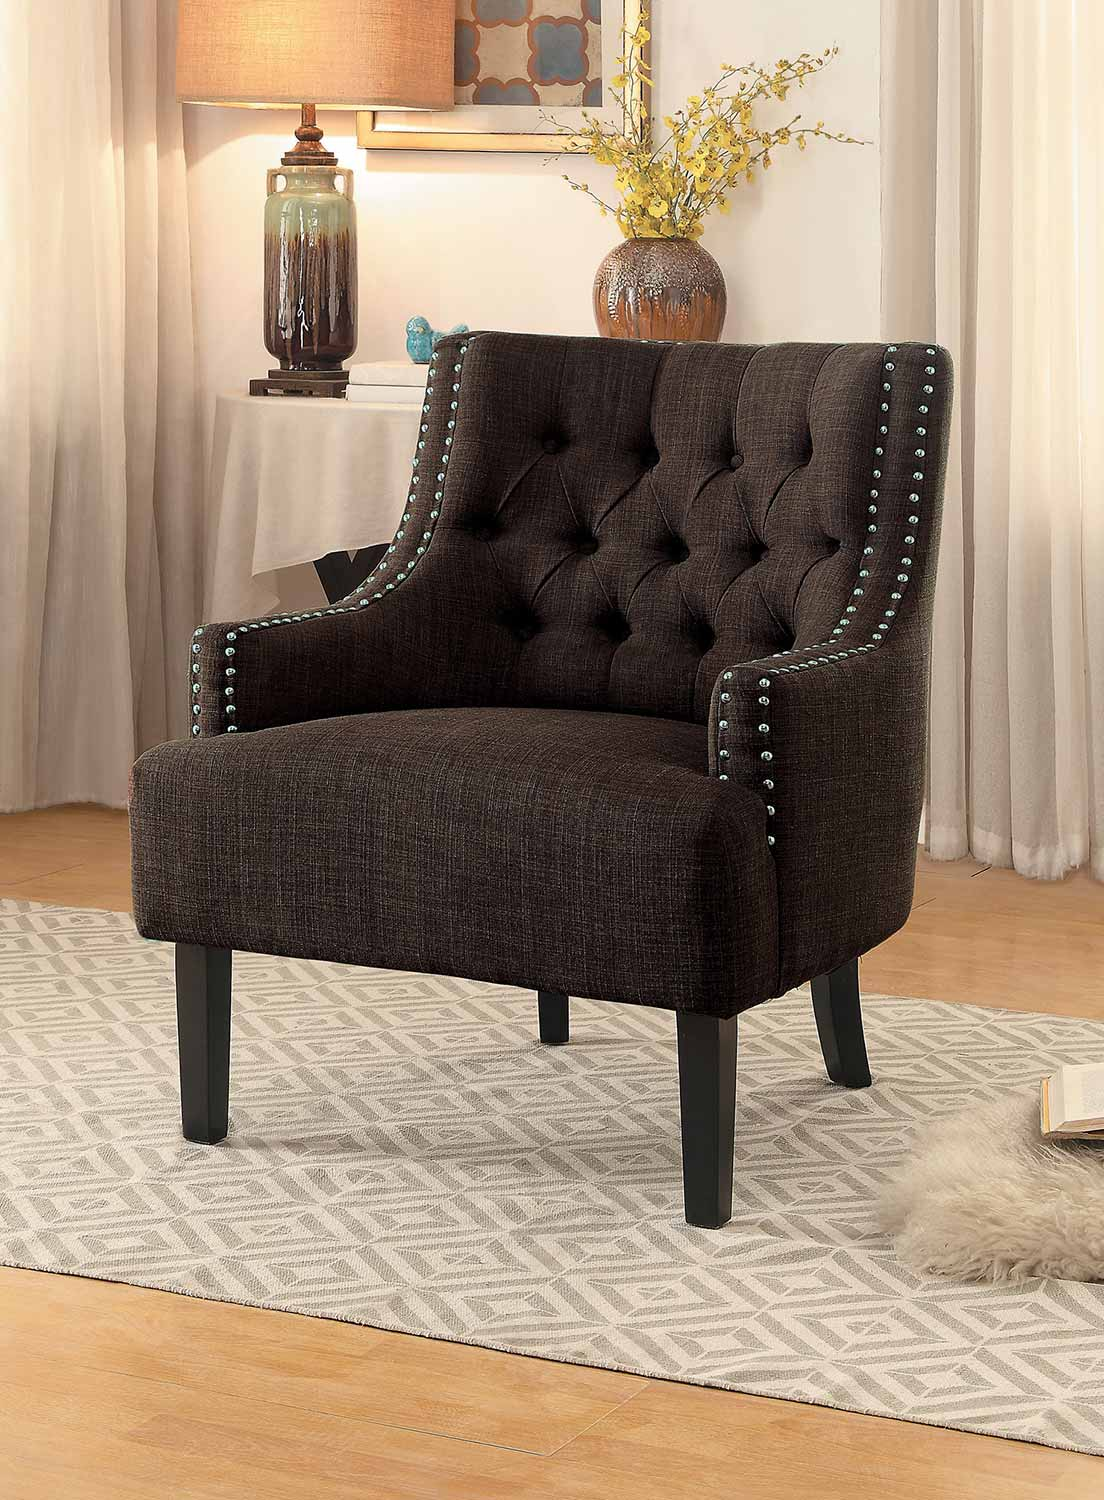 Homelegance Charisma Accent Chair - Chocolate